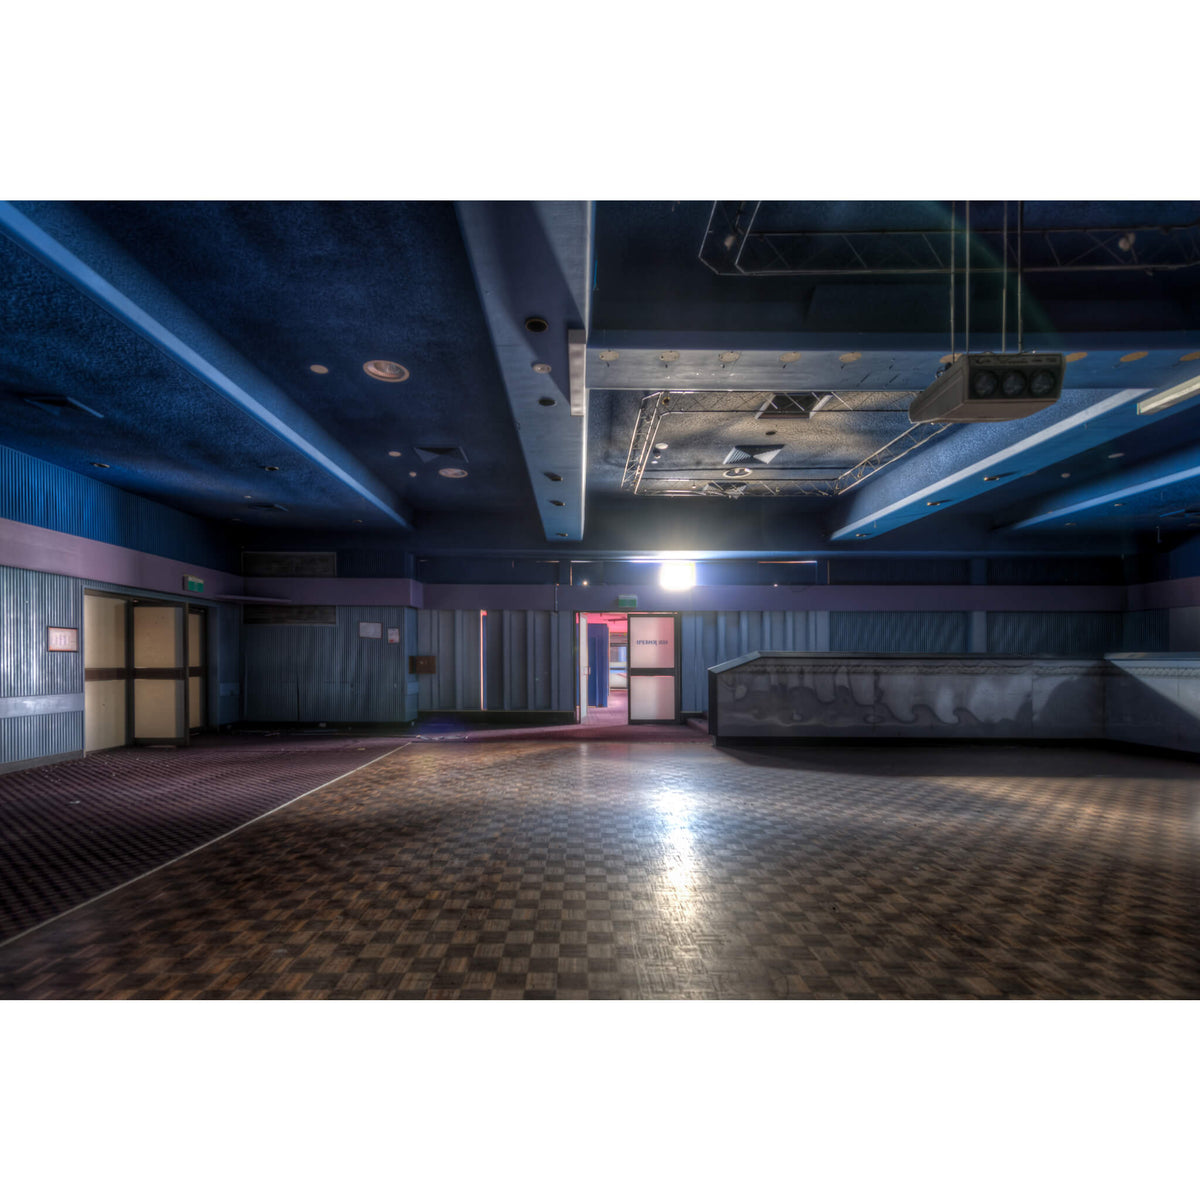 Nightclub Entrance | Bankstown RSL